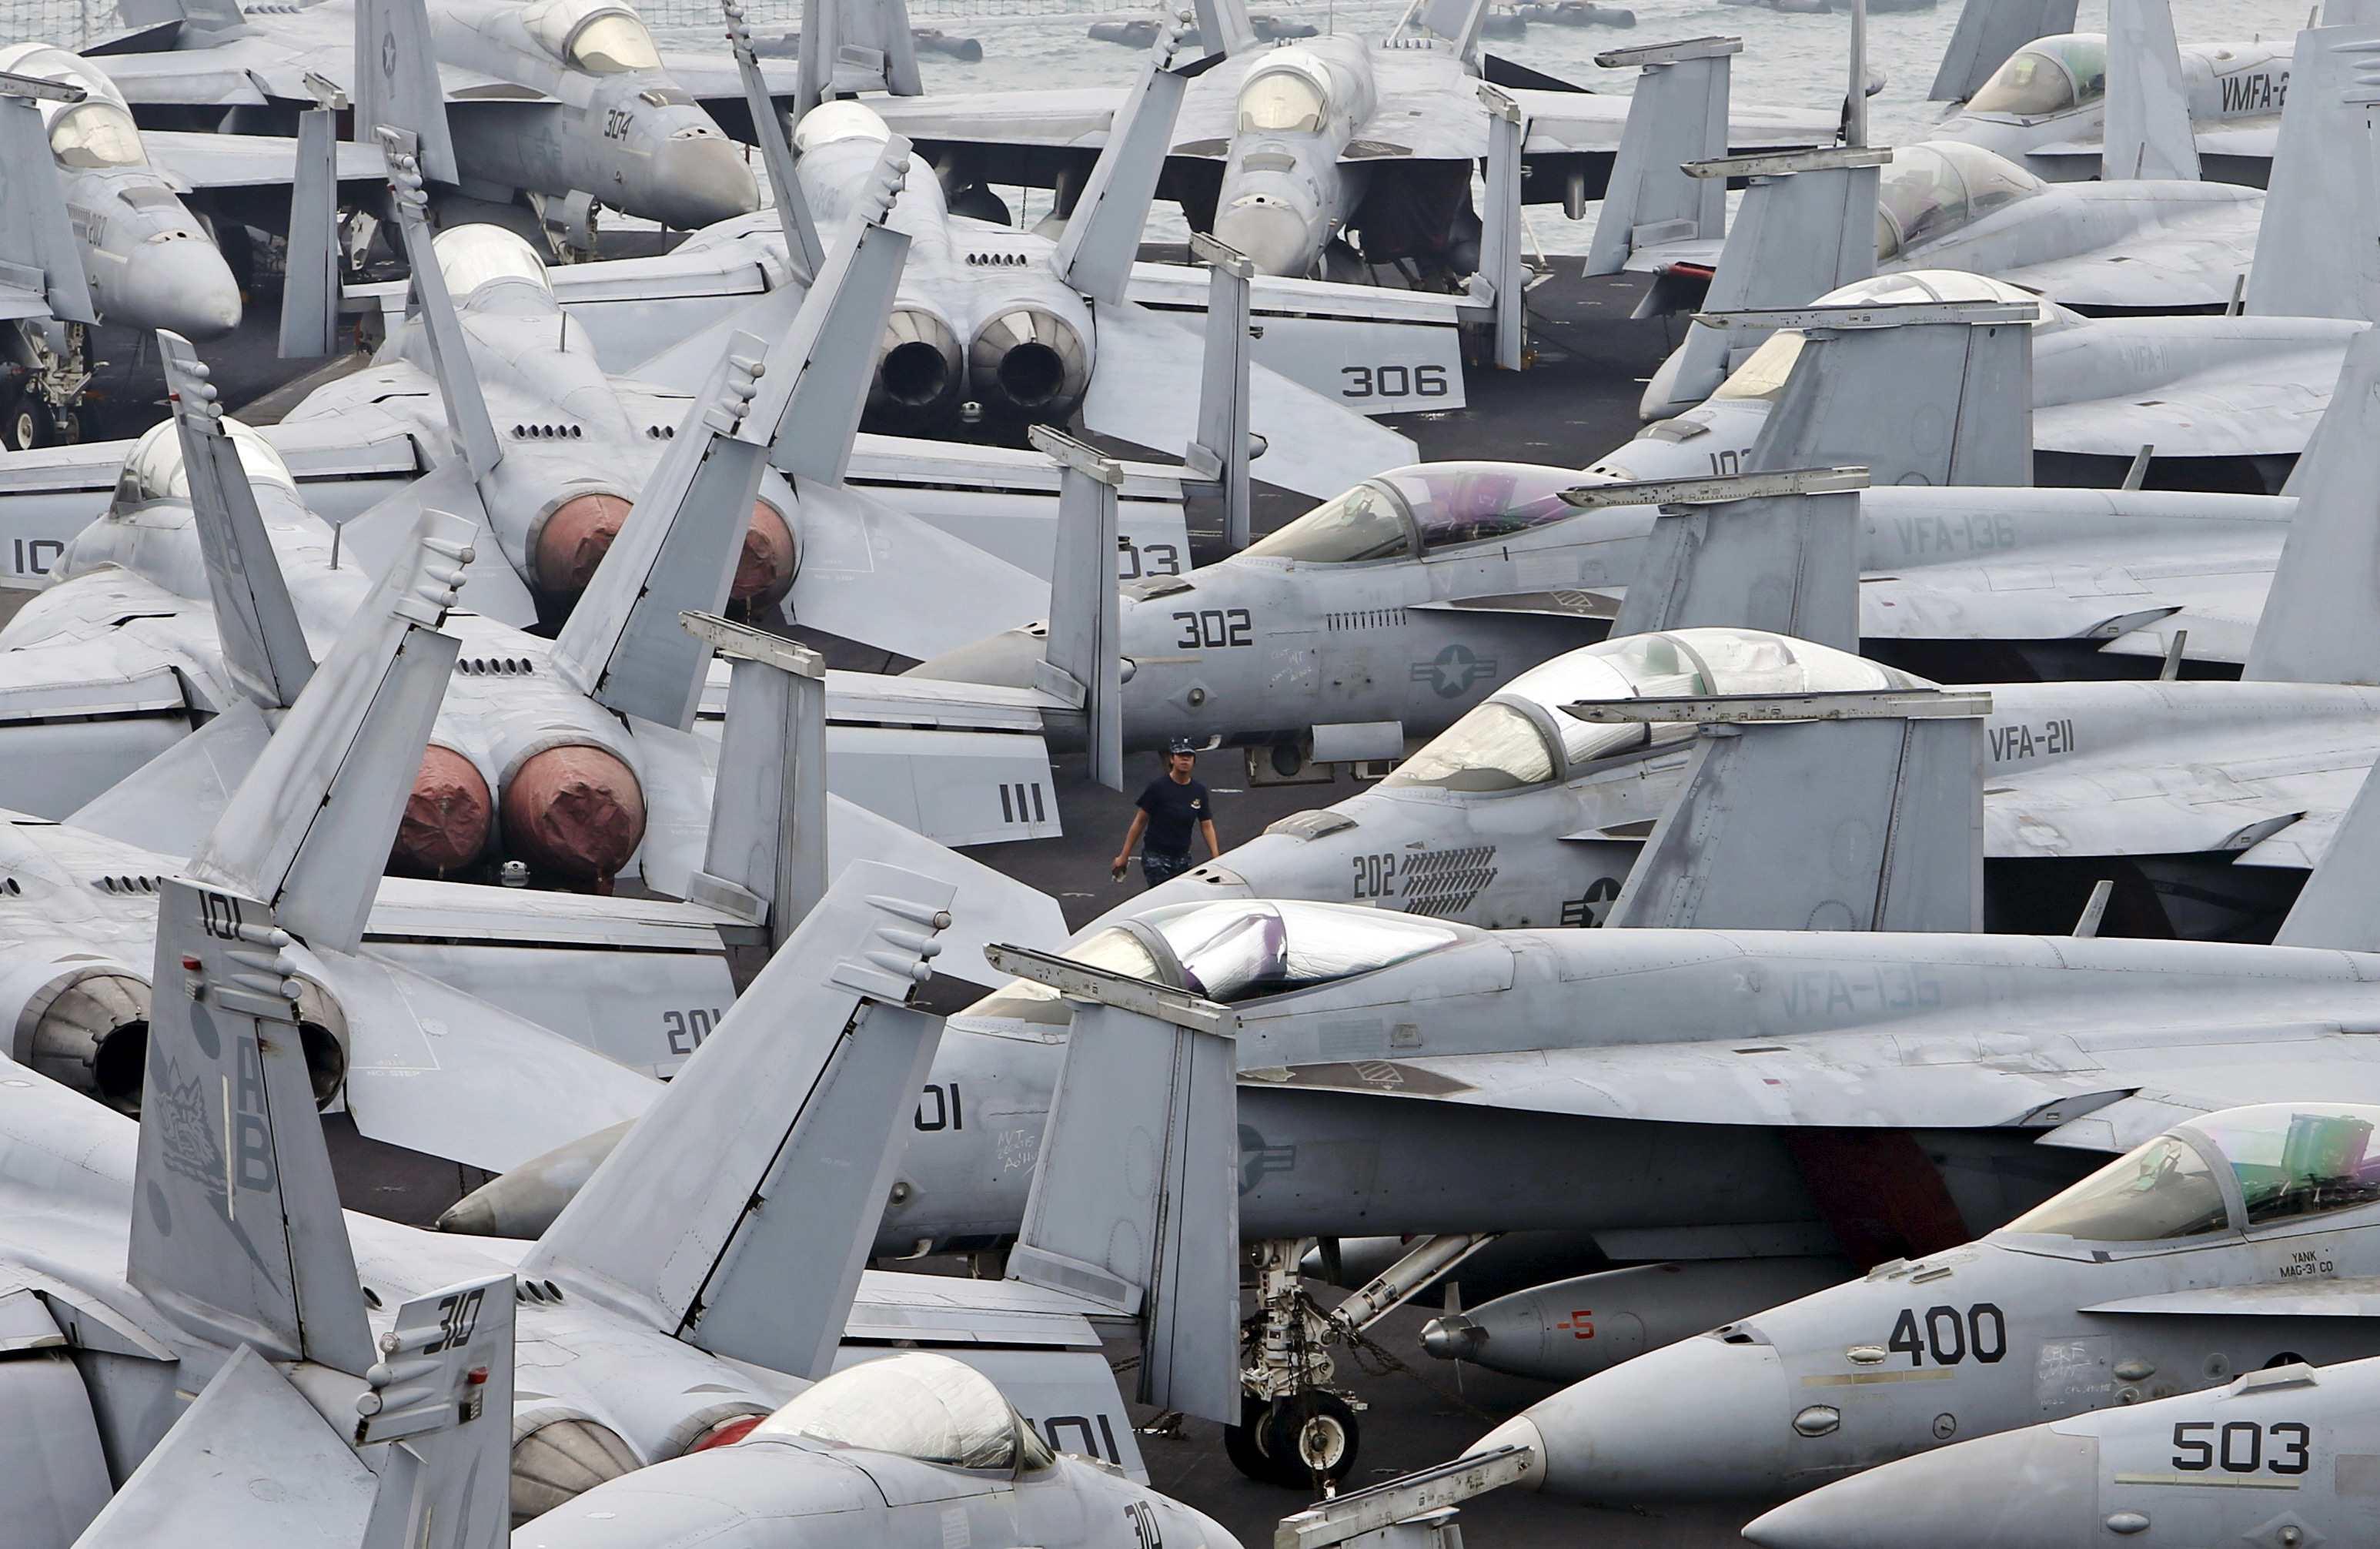 A U.S. Navy personnel walks among F/A 18 aircraft on the flight deck of the USS Theodore Roosevelt at Changi Navy Base in Singapore October 24, 2015. The aircraft carrier and its strike group of 7 ships and 80 aircraft docked in Singapore on Saturday after completing a deployment to the Arabian Gulf for the last 7 months. REUTERS/Edgar Su  - GF20000030490